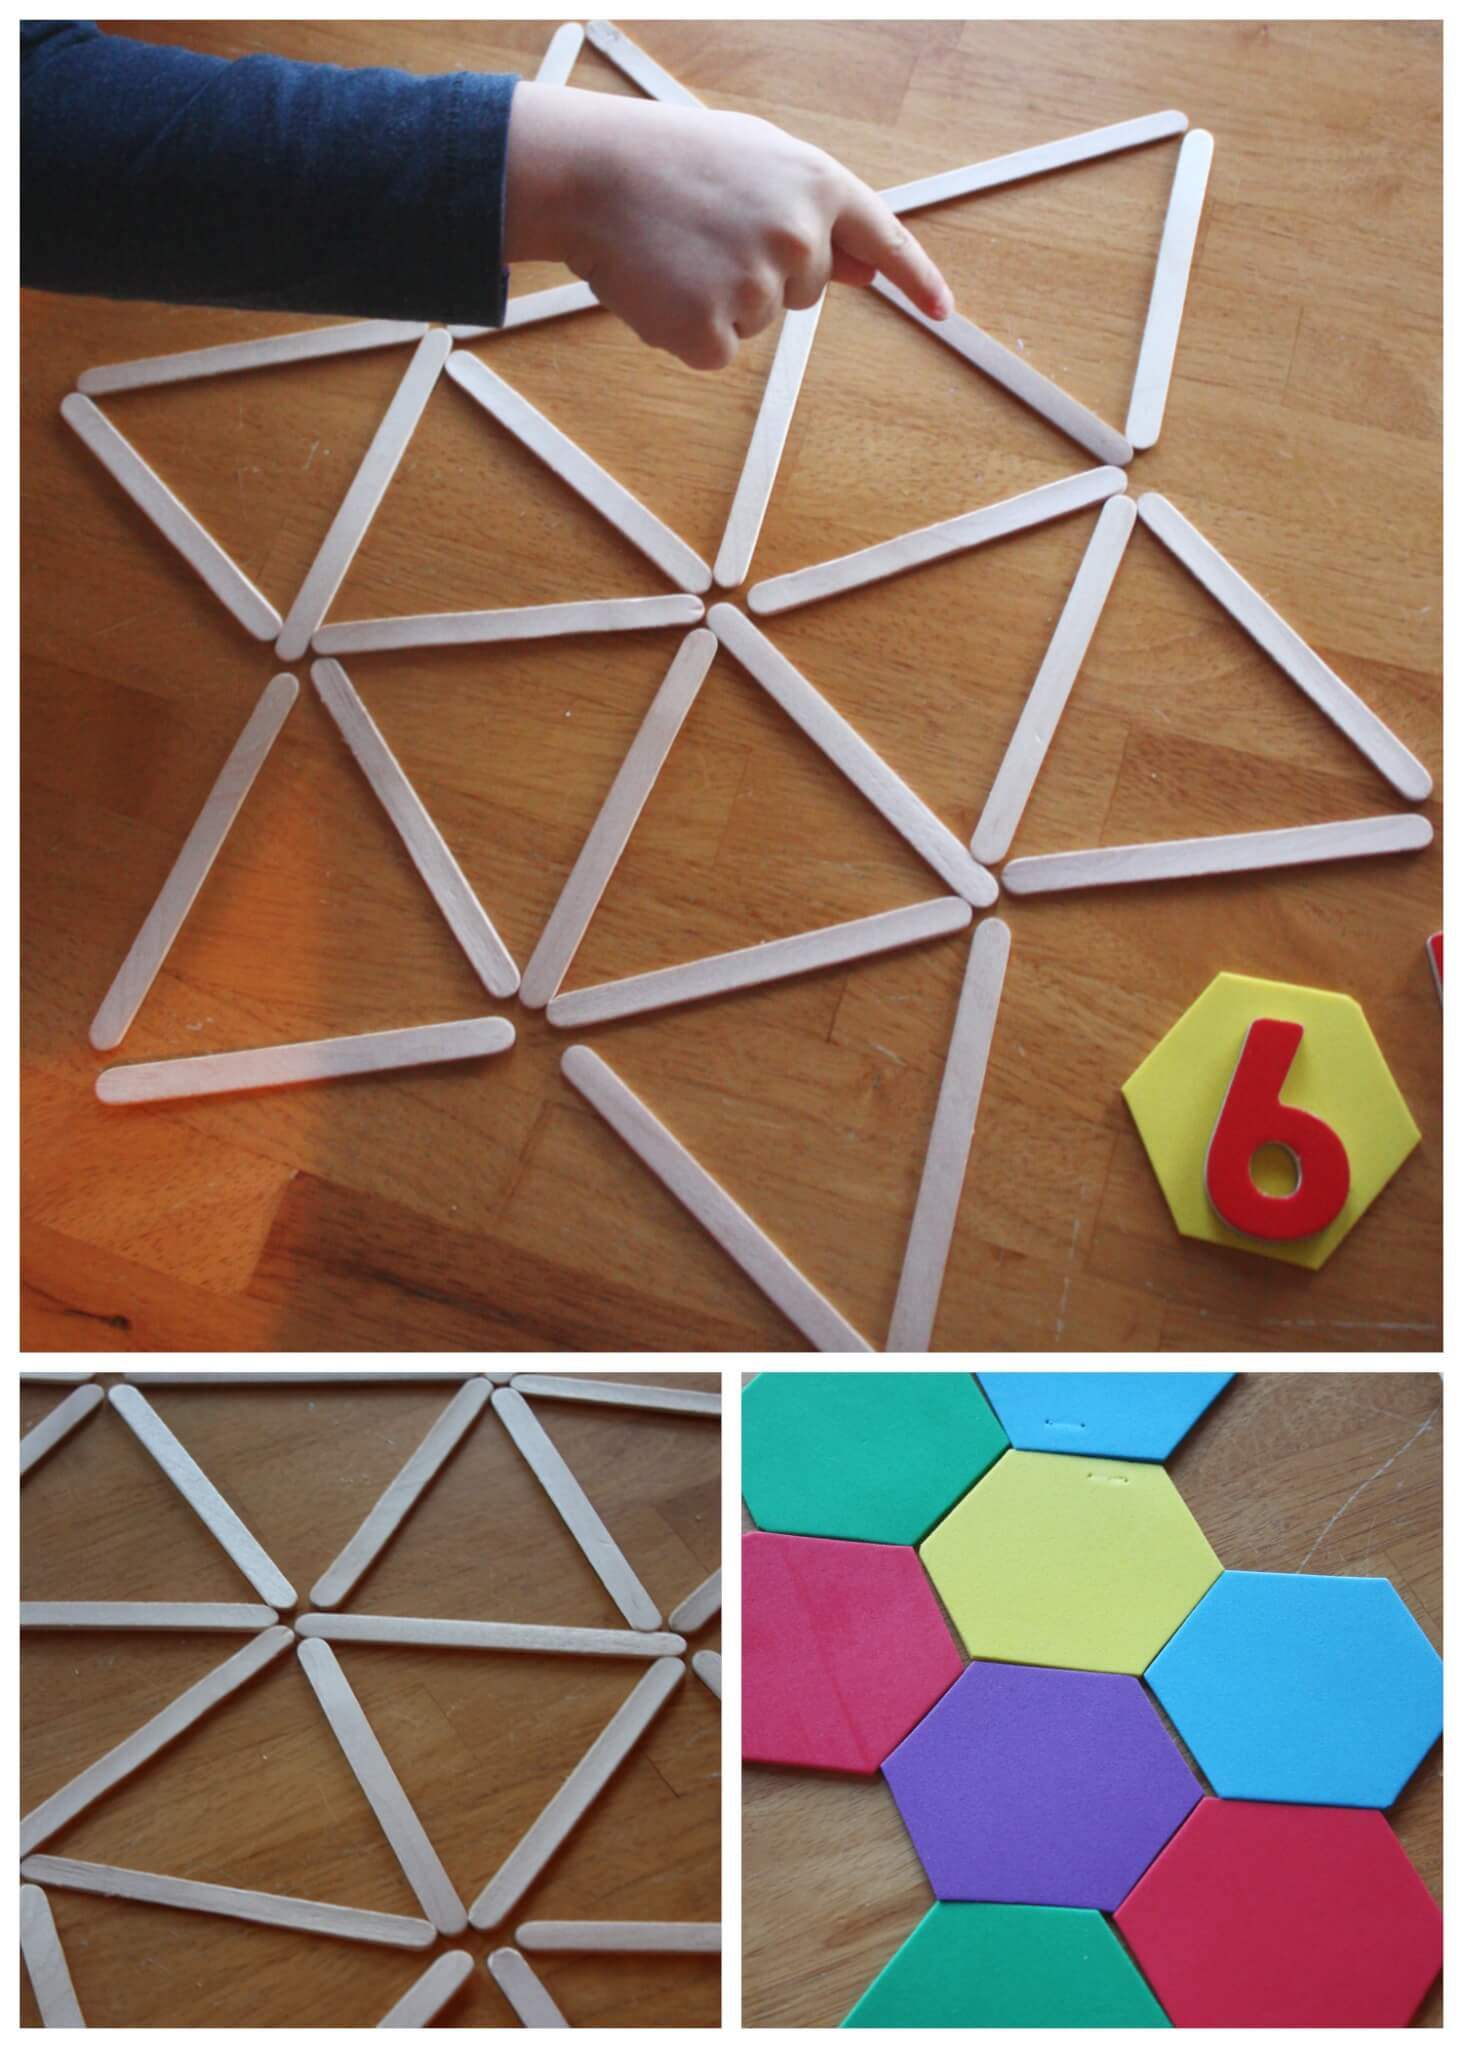 Geometric Shapes Activity Math And Stem Ideas For Kids